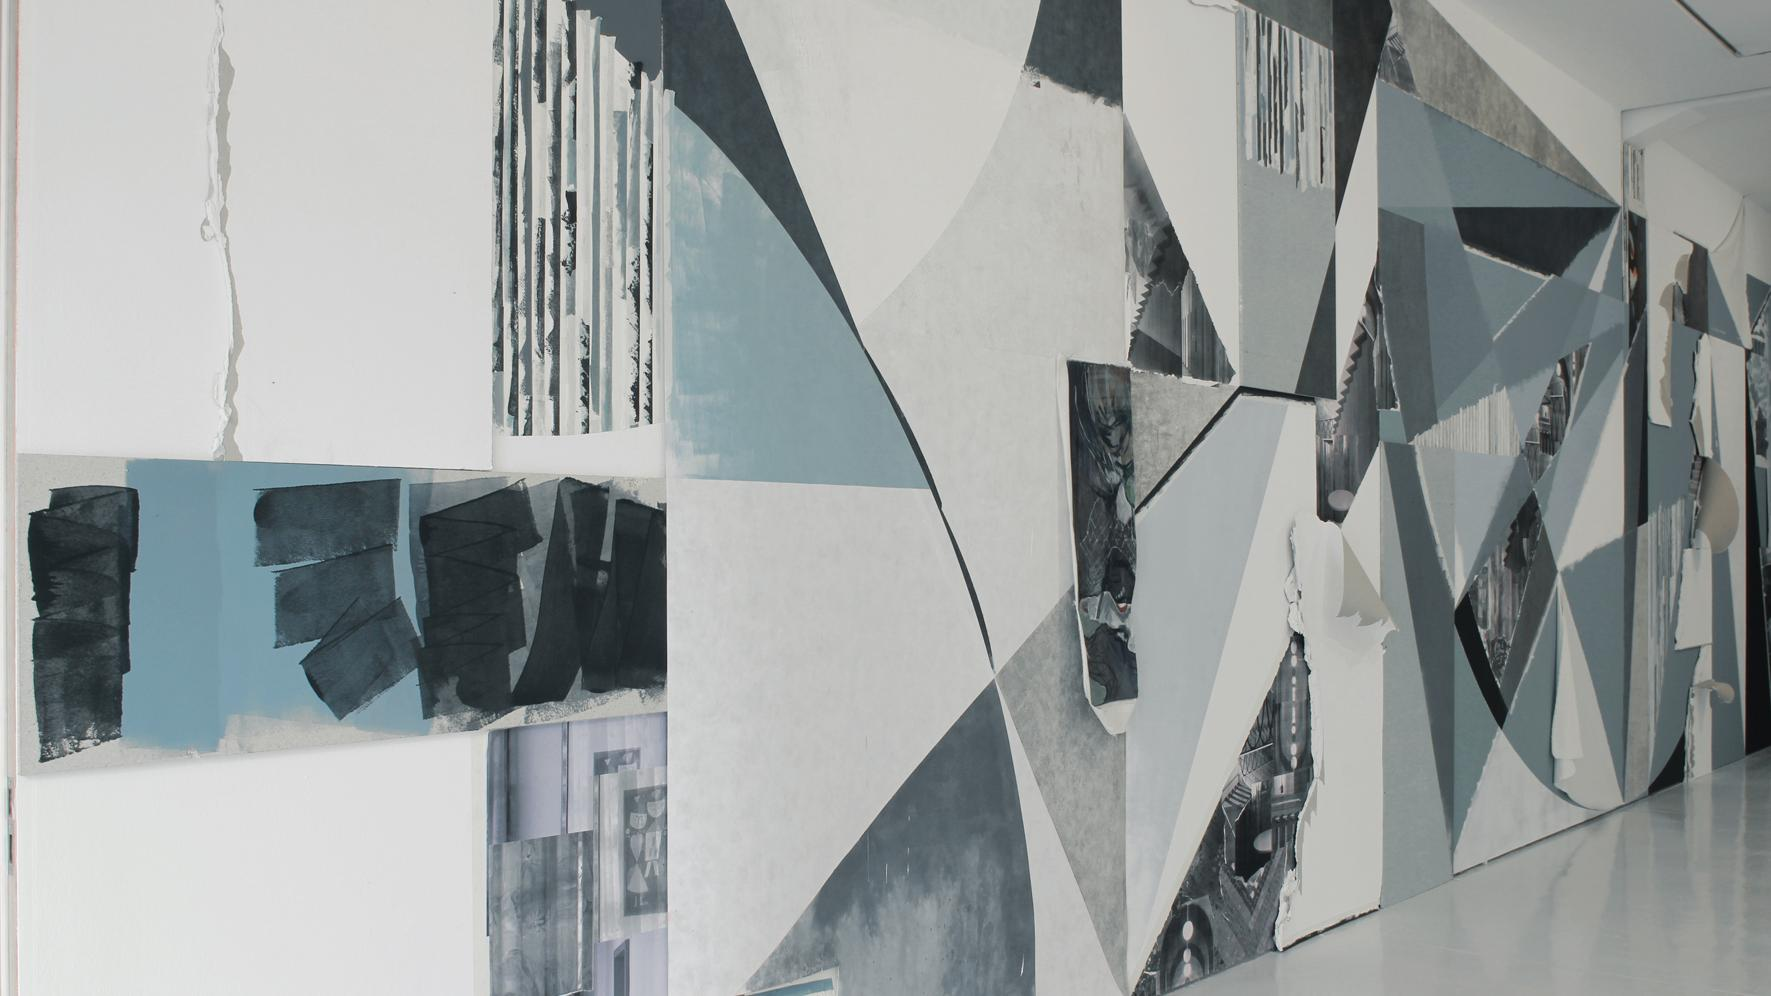 Alexander Wolff, Wandbild KAI 10 Düsseldorf, 2011, collage on wall, Courtesy Galerie Ben Kaufmann, Berlin, installation view KAI 10